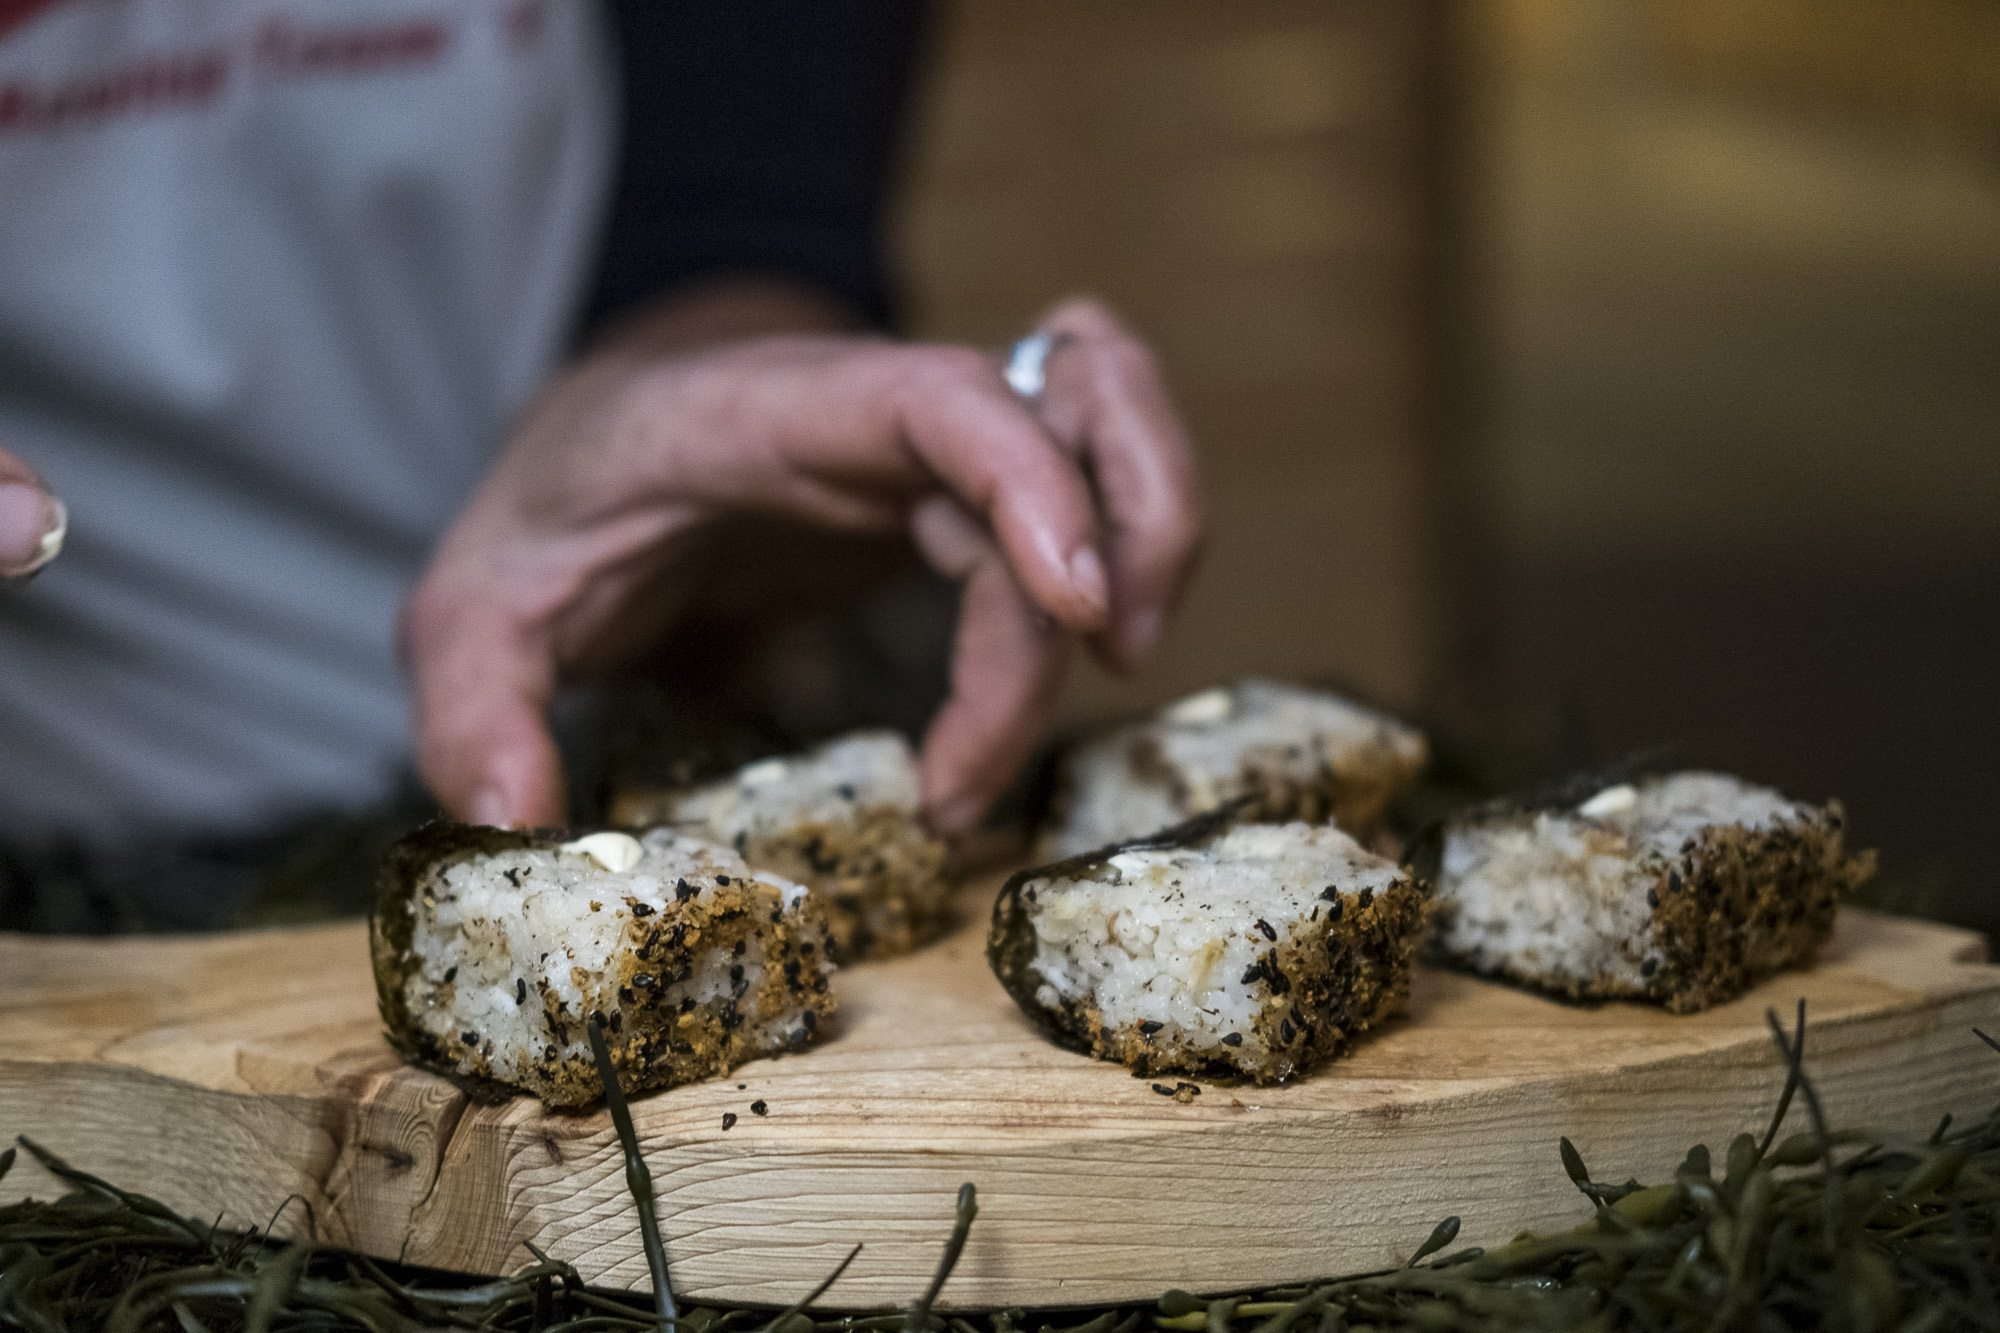 toronto-food-events-trashed-and-wasted-all-garbage-artscape-wychwood-barns-hooked-inc-onigiri